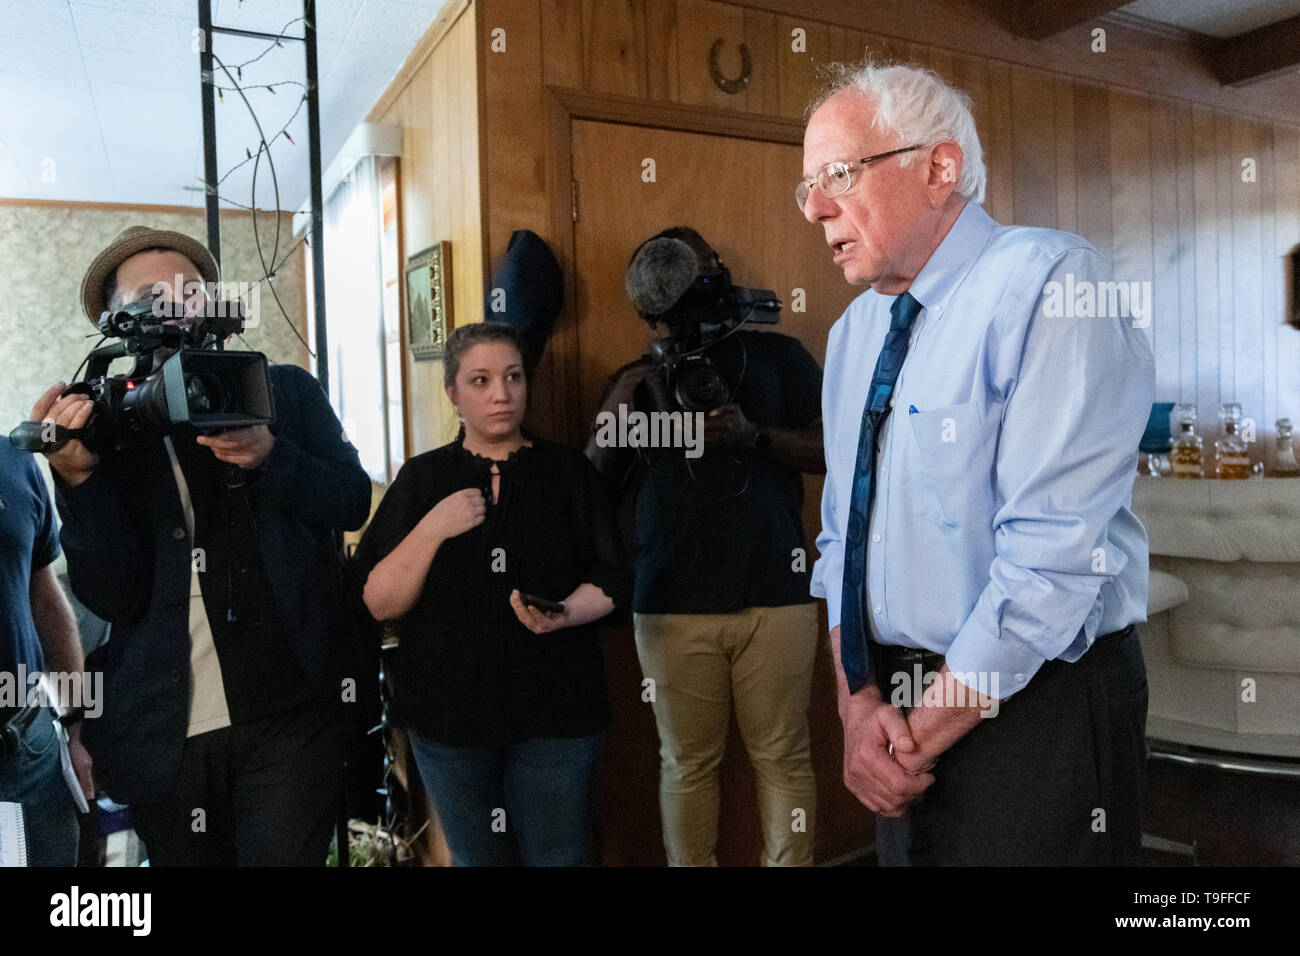 Charleston, USA. 18th May, 2019. Democratic presidential hopeful Sen. Bernie Sanders talks with reporters following a home visit with Eugene Smith, and his partner Paula Brown May 18, 2019 in Denmark, South Carolina. Smith and Brown, are fighting for safe drinking water in their rural town where tap water is not safe to drink due to agricultural and industrial chemicals. Credit: Planetpix/Alamy Live News - Stock Image